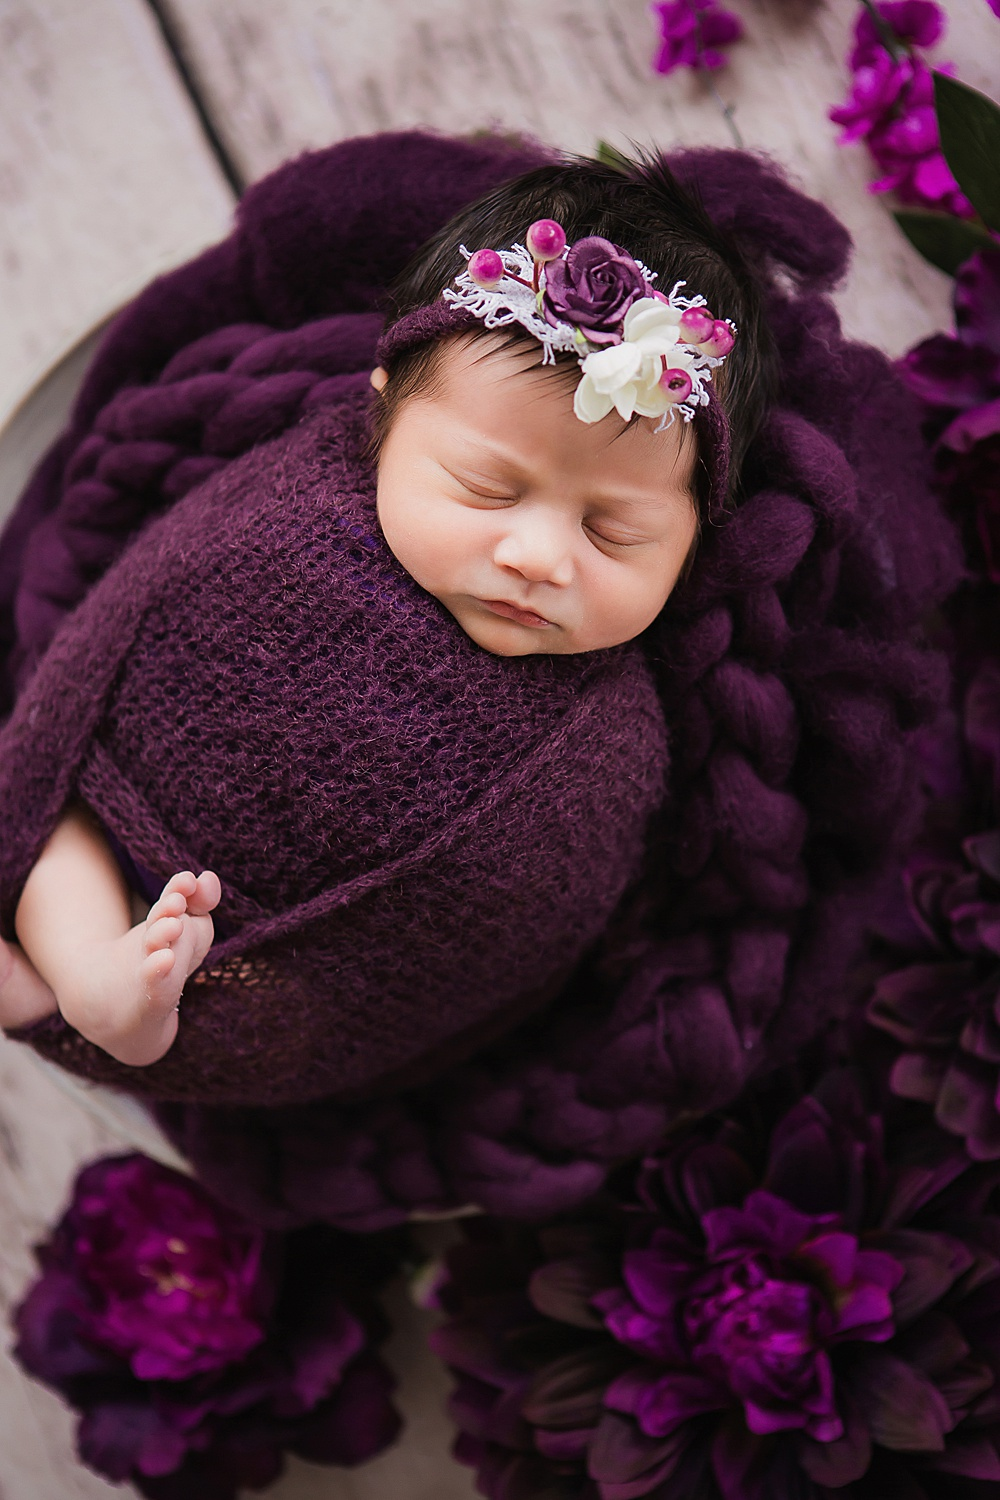 vibrant-colors- newborn-photography18.jpg